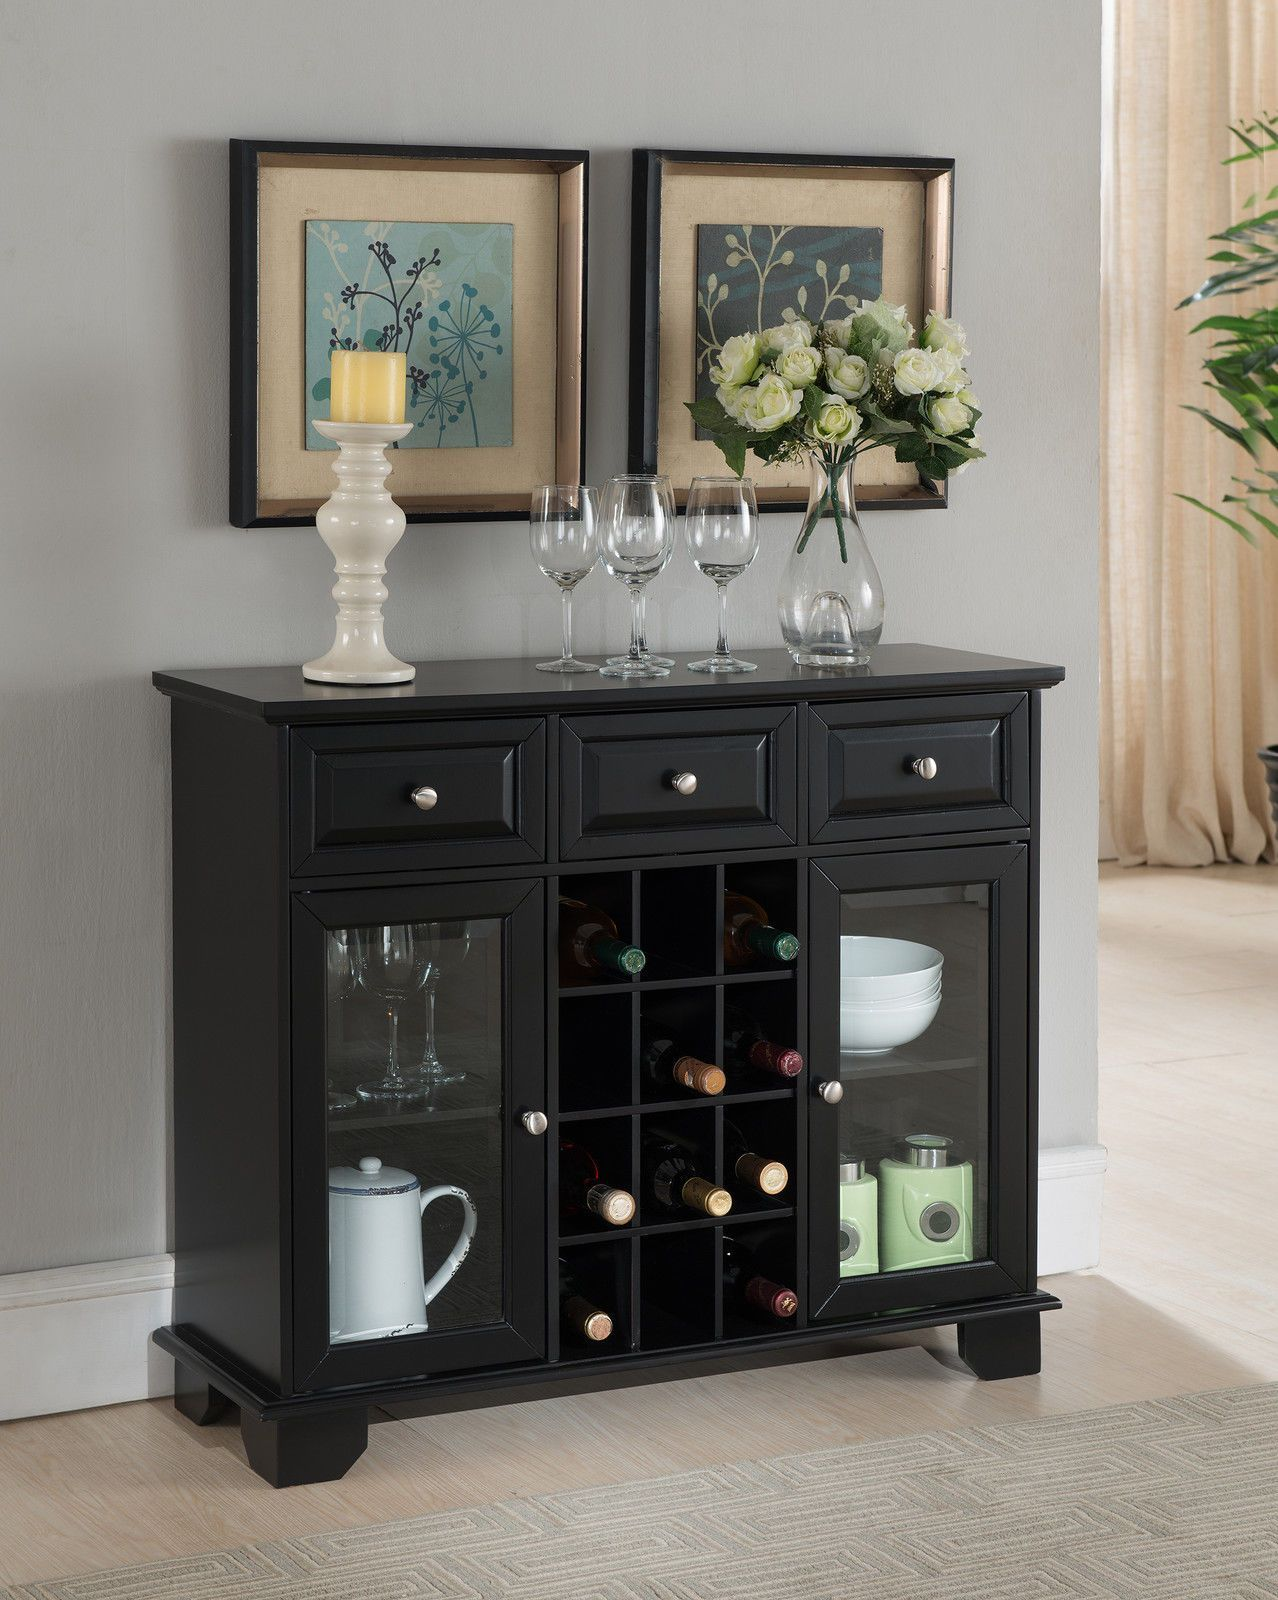 nice Kings Model Buffet Server Sideboard Cupboard with Wine Storage